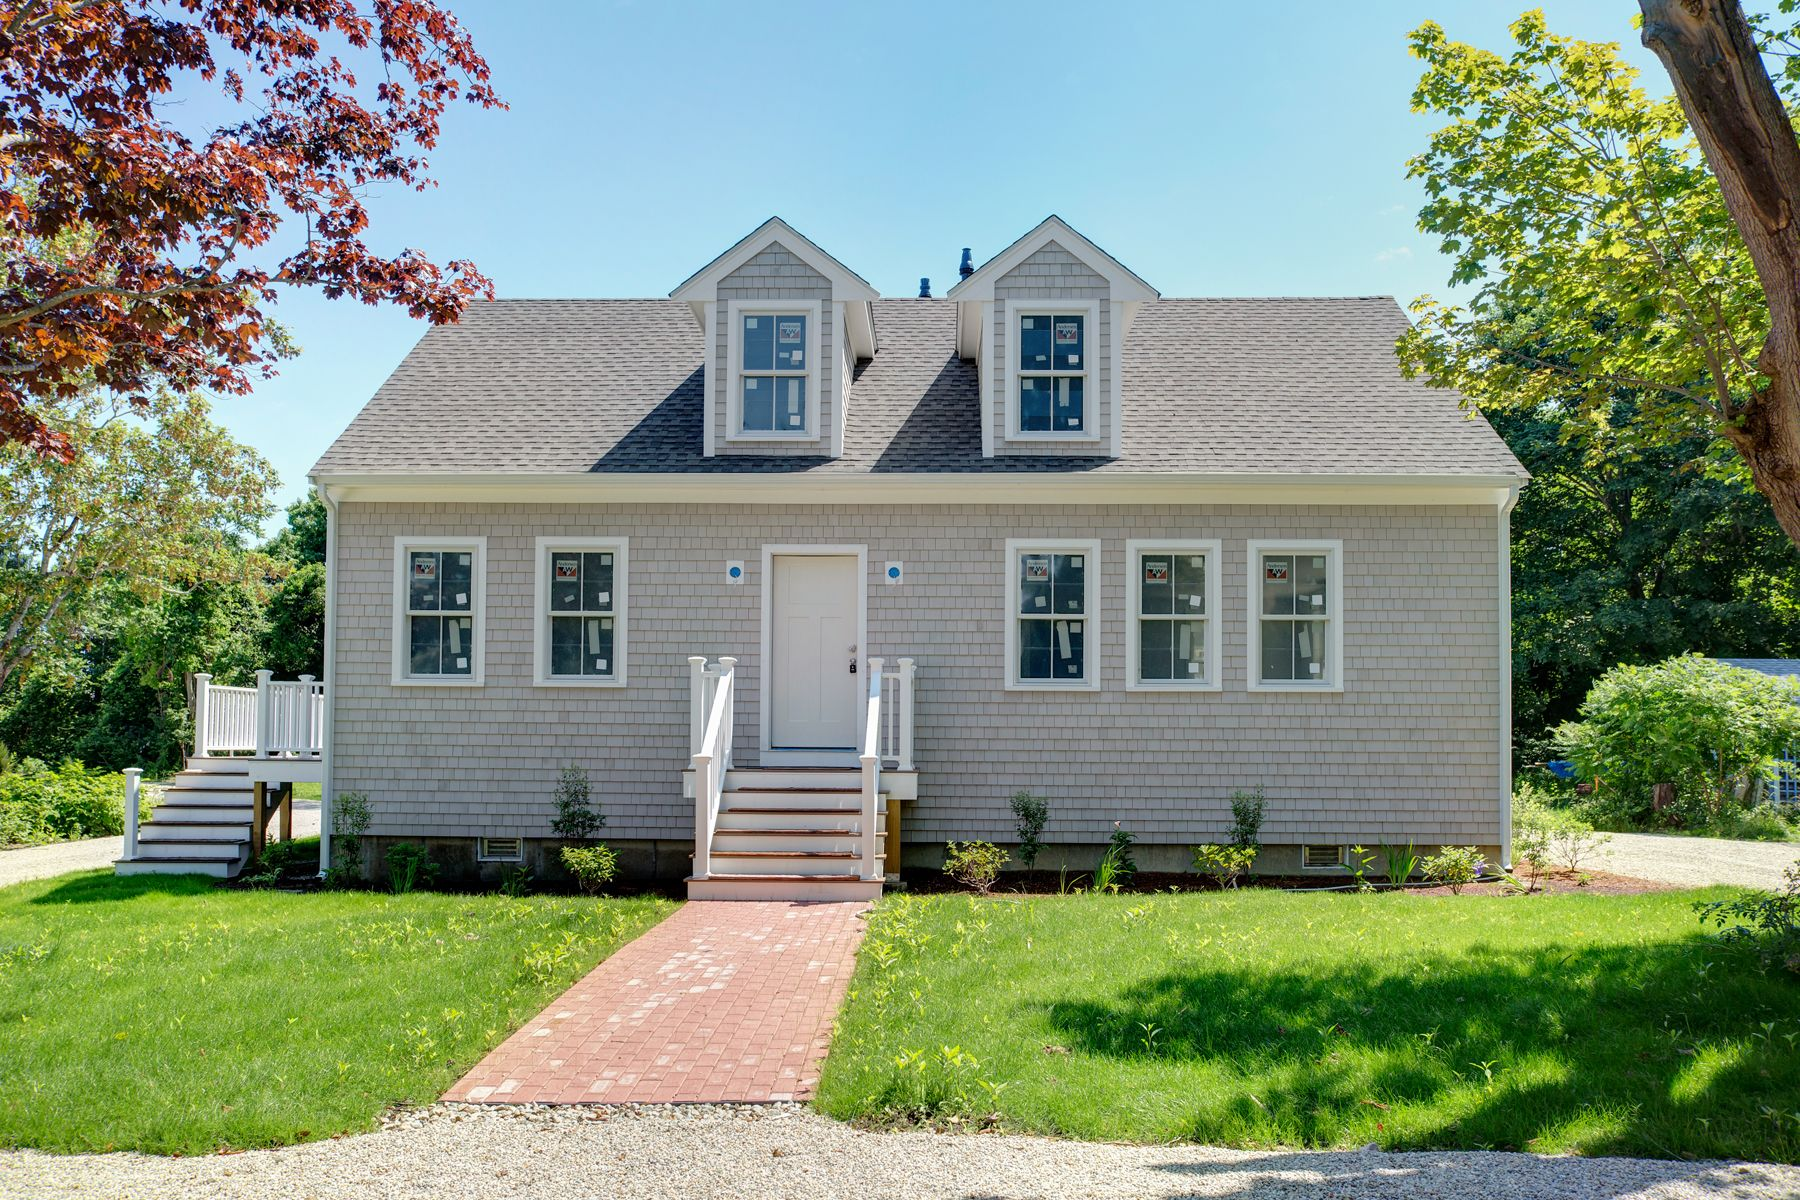 Single Family Homes for Sale at 20 State Street Sandwich, Massachusetts 02563 United States